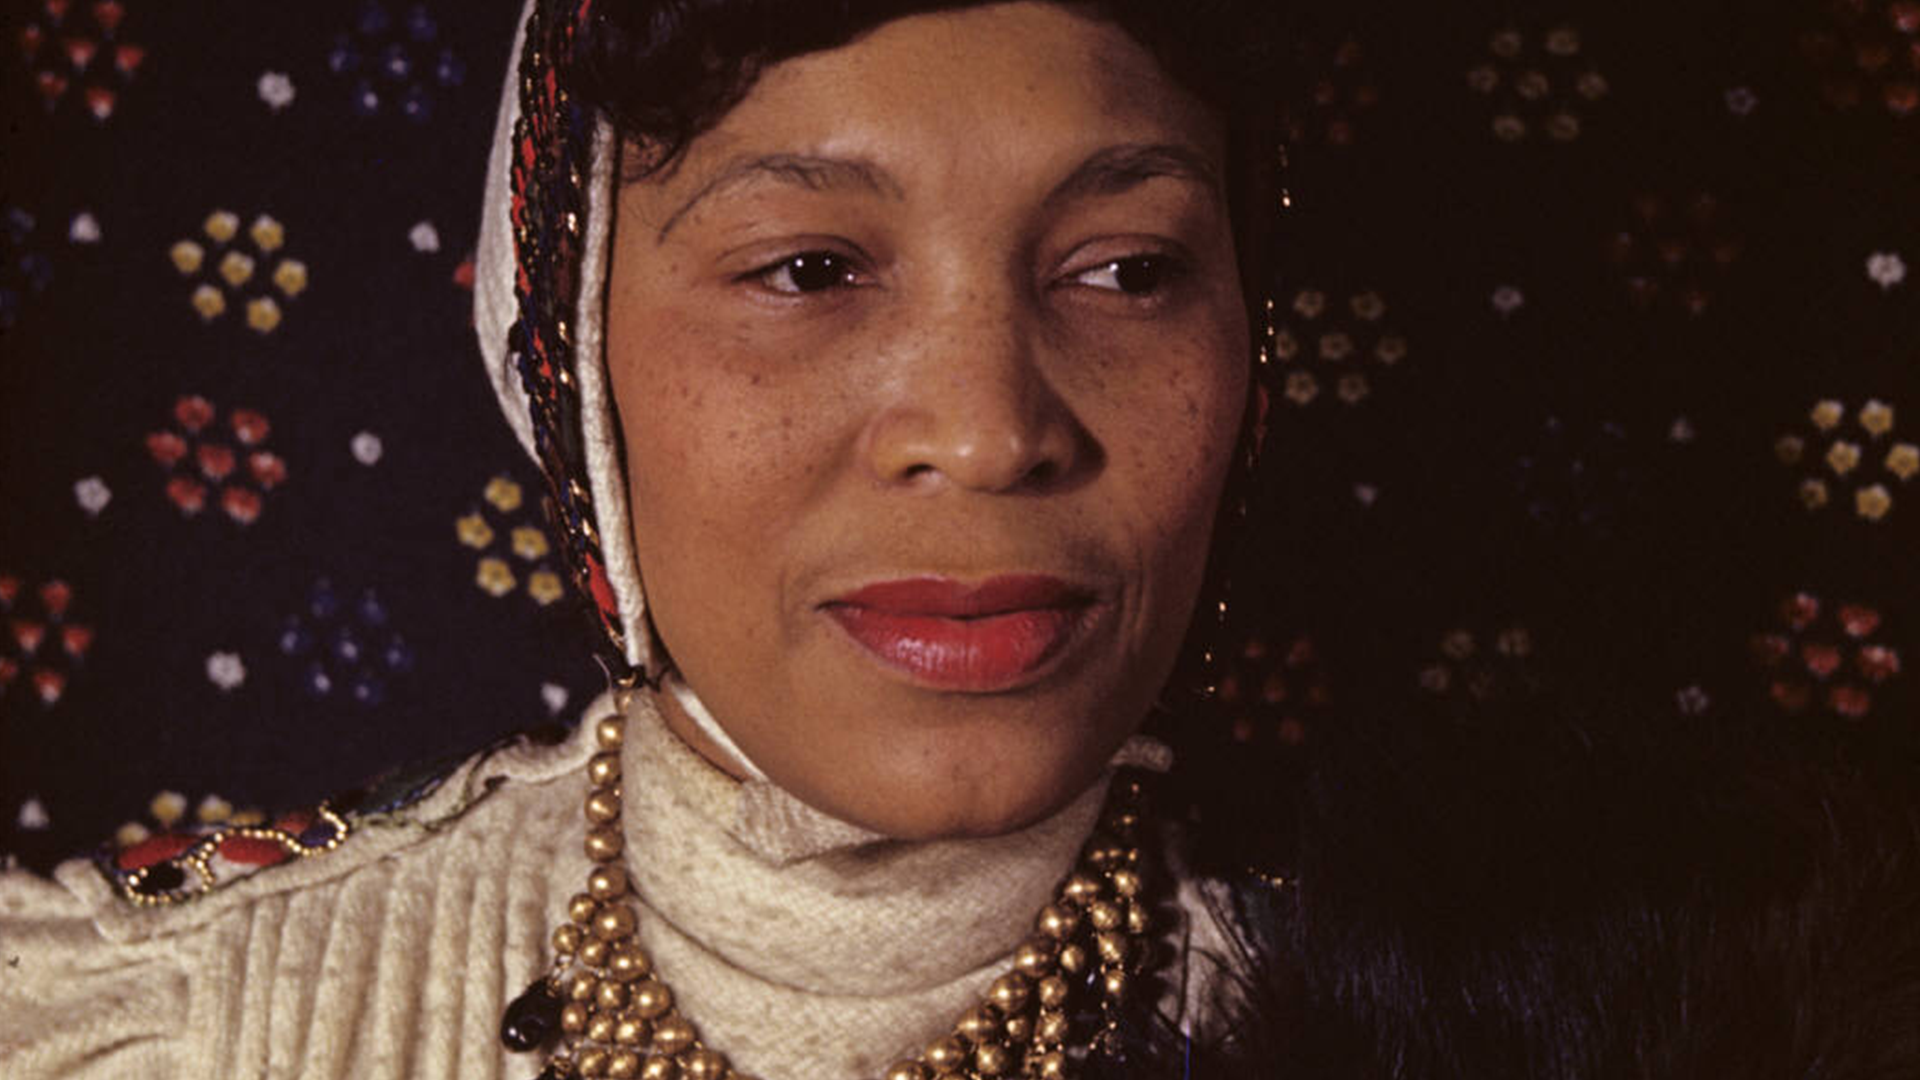 Watch: Zora Neale Hurston was criticized for writing in the 'black voice.' Now her novels are classics.